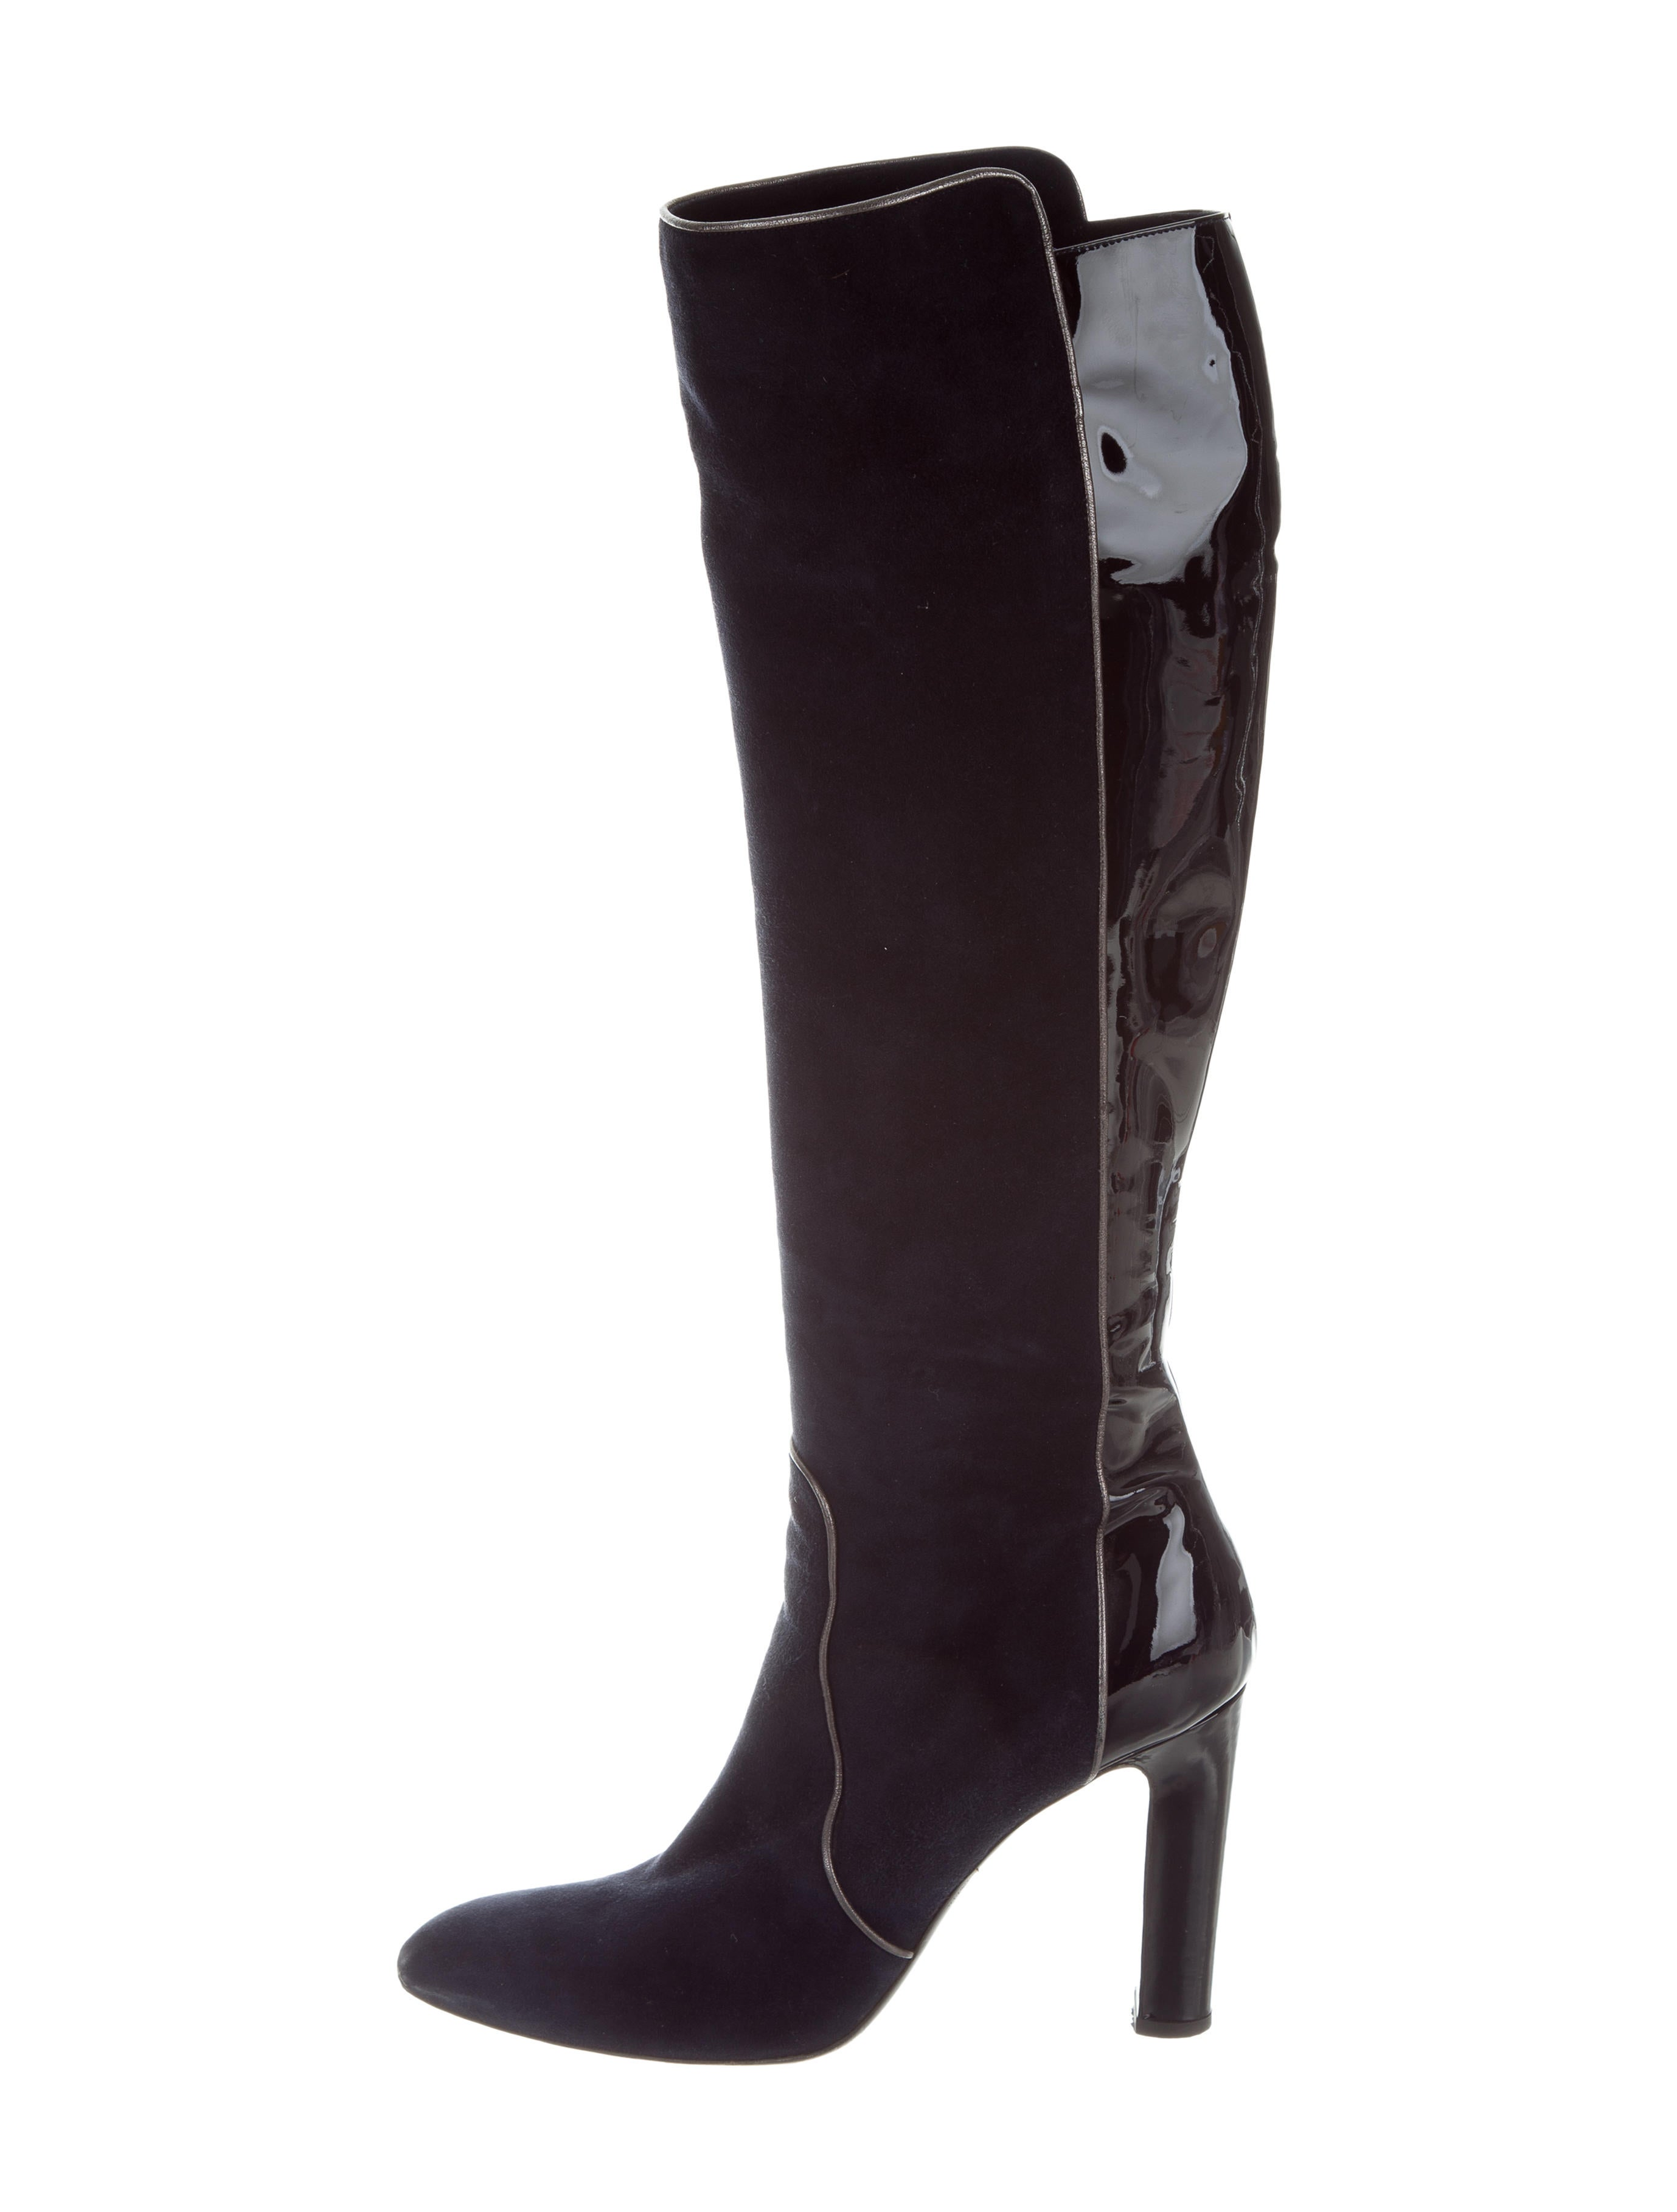 new styles cheap sale great deals Alexandra Neel Suede Knee-High Boots geniue stockist online high quality sale online sale visa payment 7hNTh